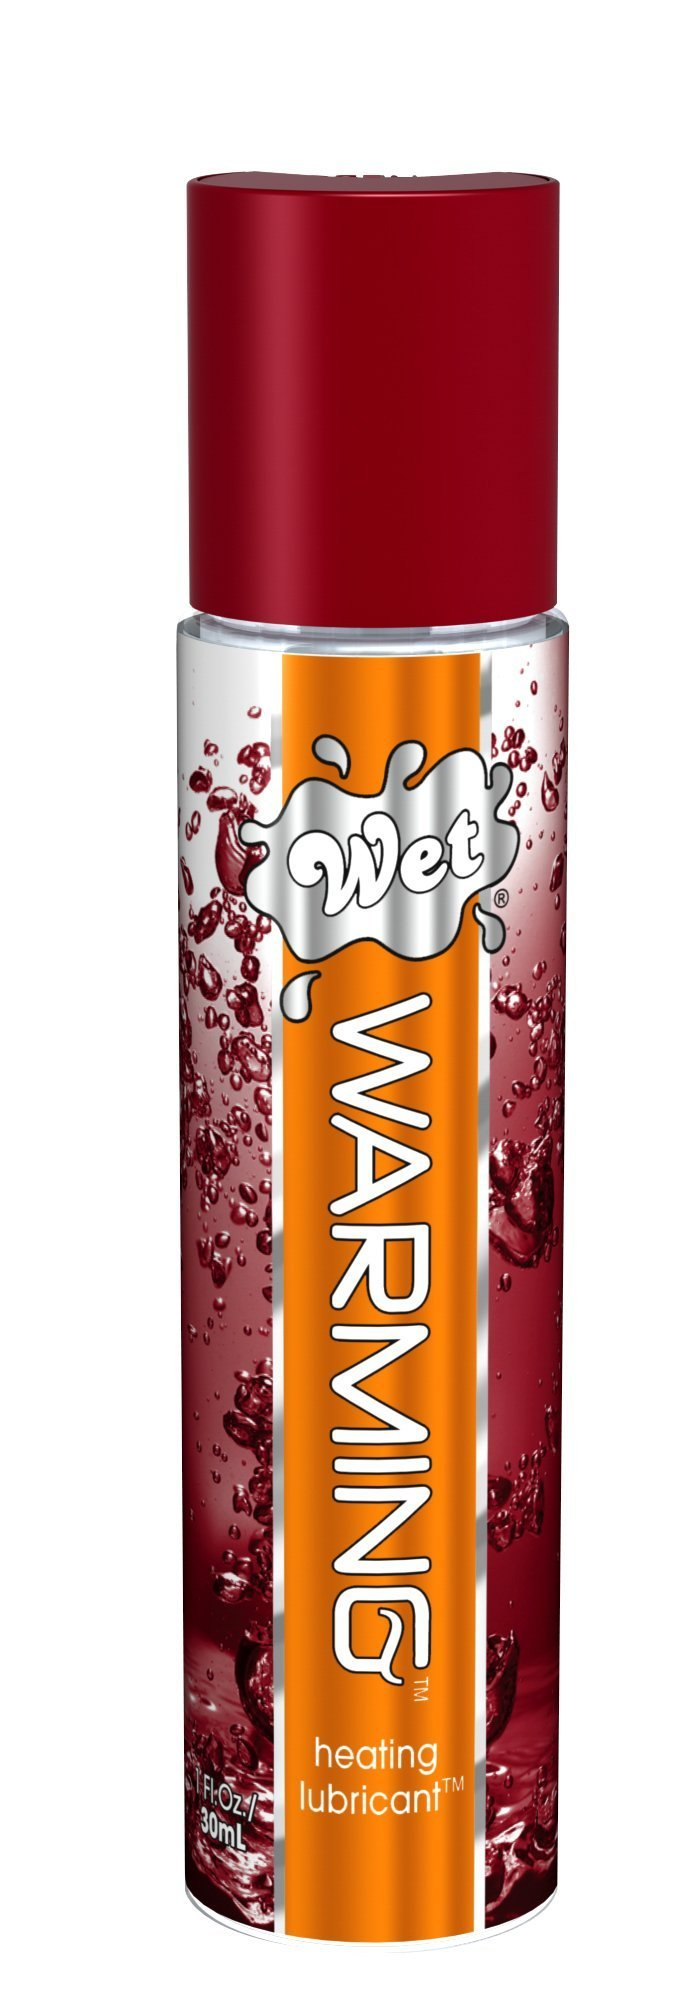 Wet - Warming Heating Lubricant 30ml (Red)